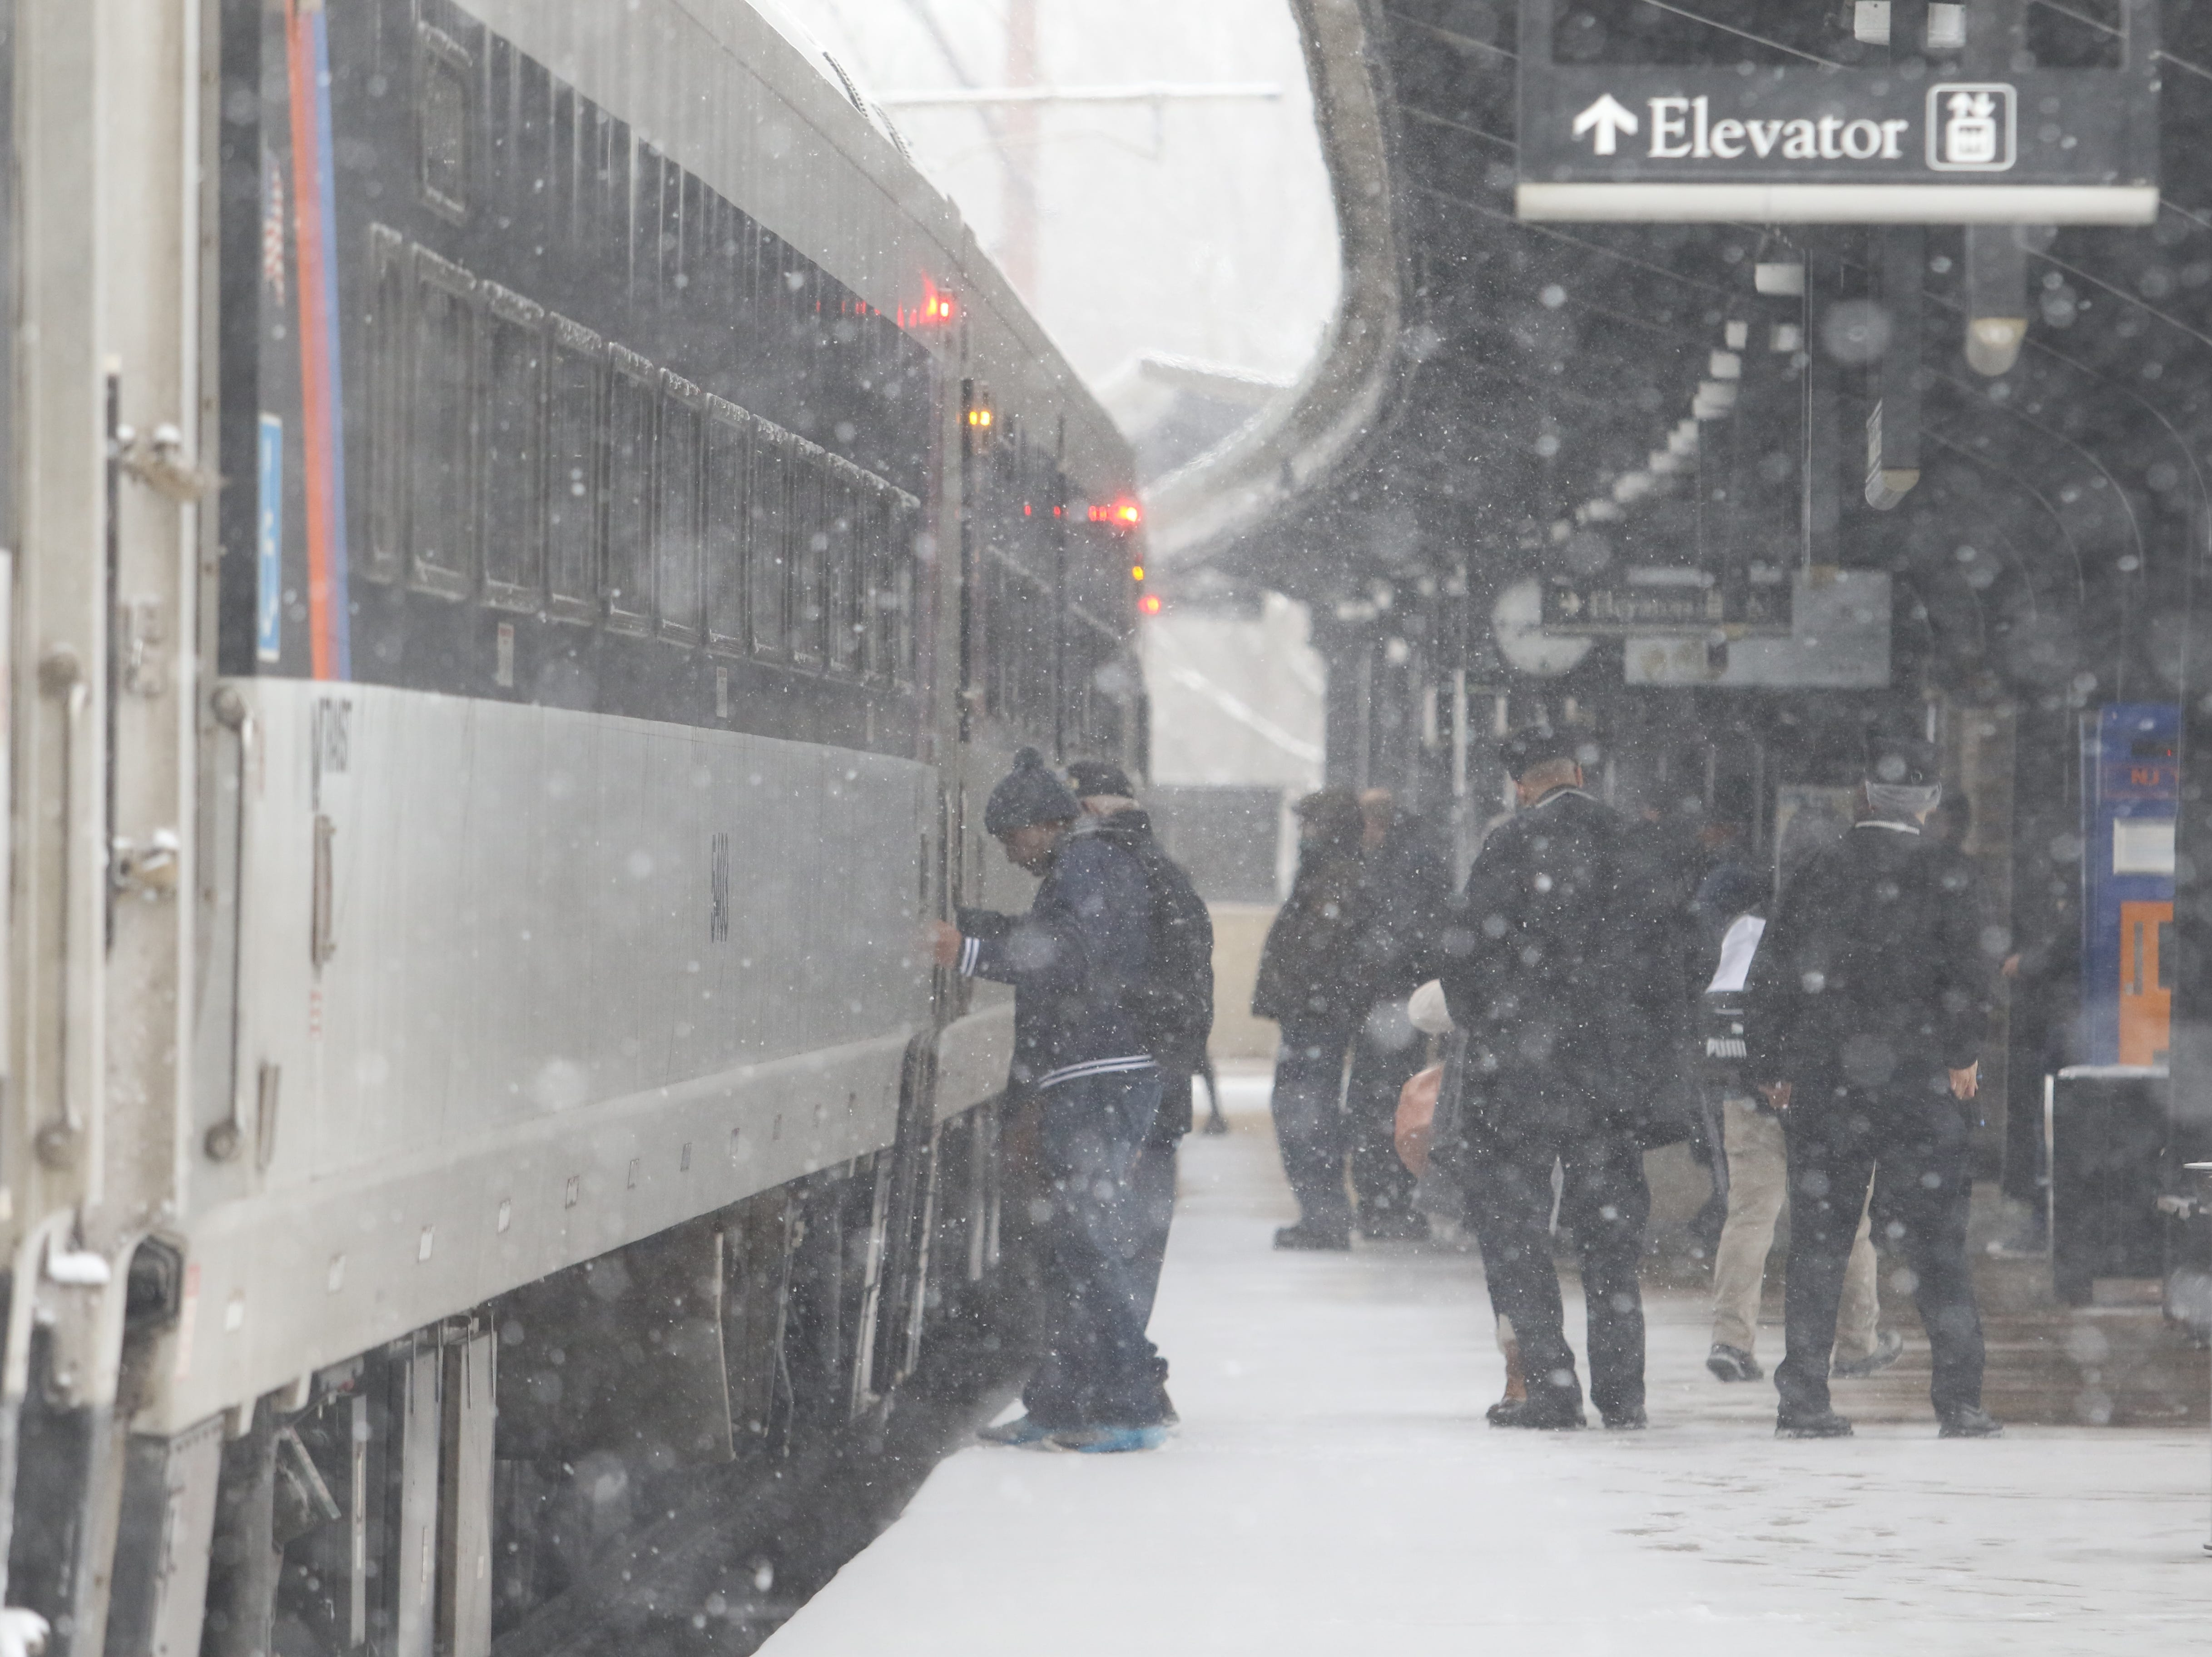 Afternoon commuters board the train that pulled into the Morristown Train Station in heavy snow this afternoon on February 20, 2018.